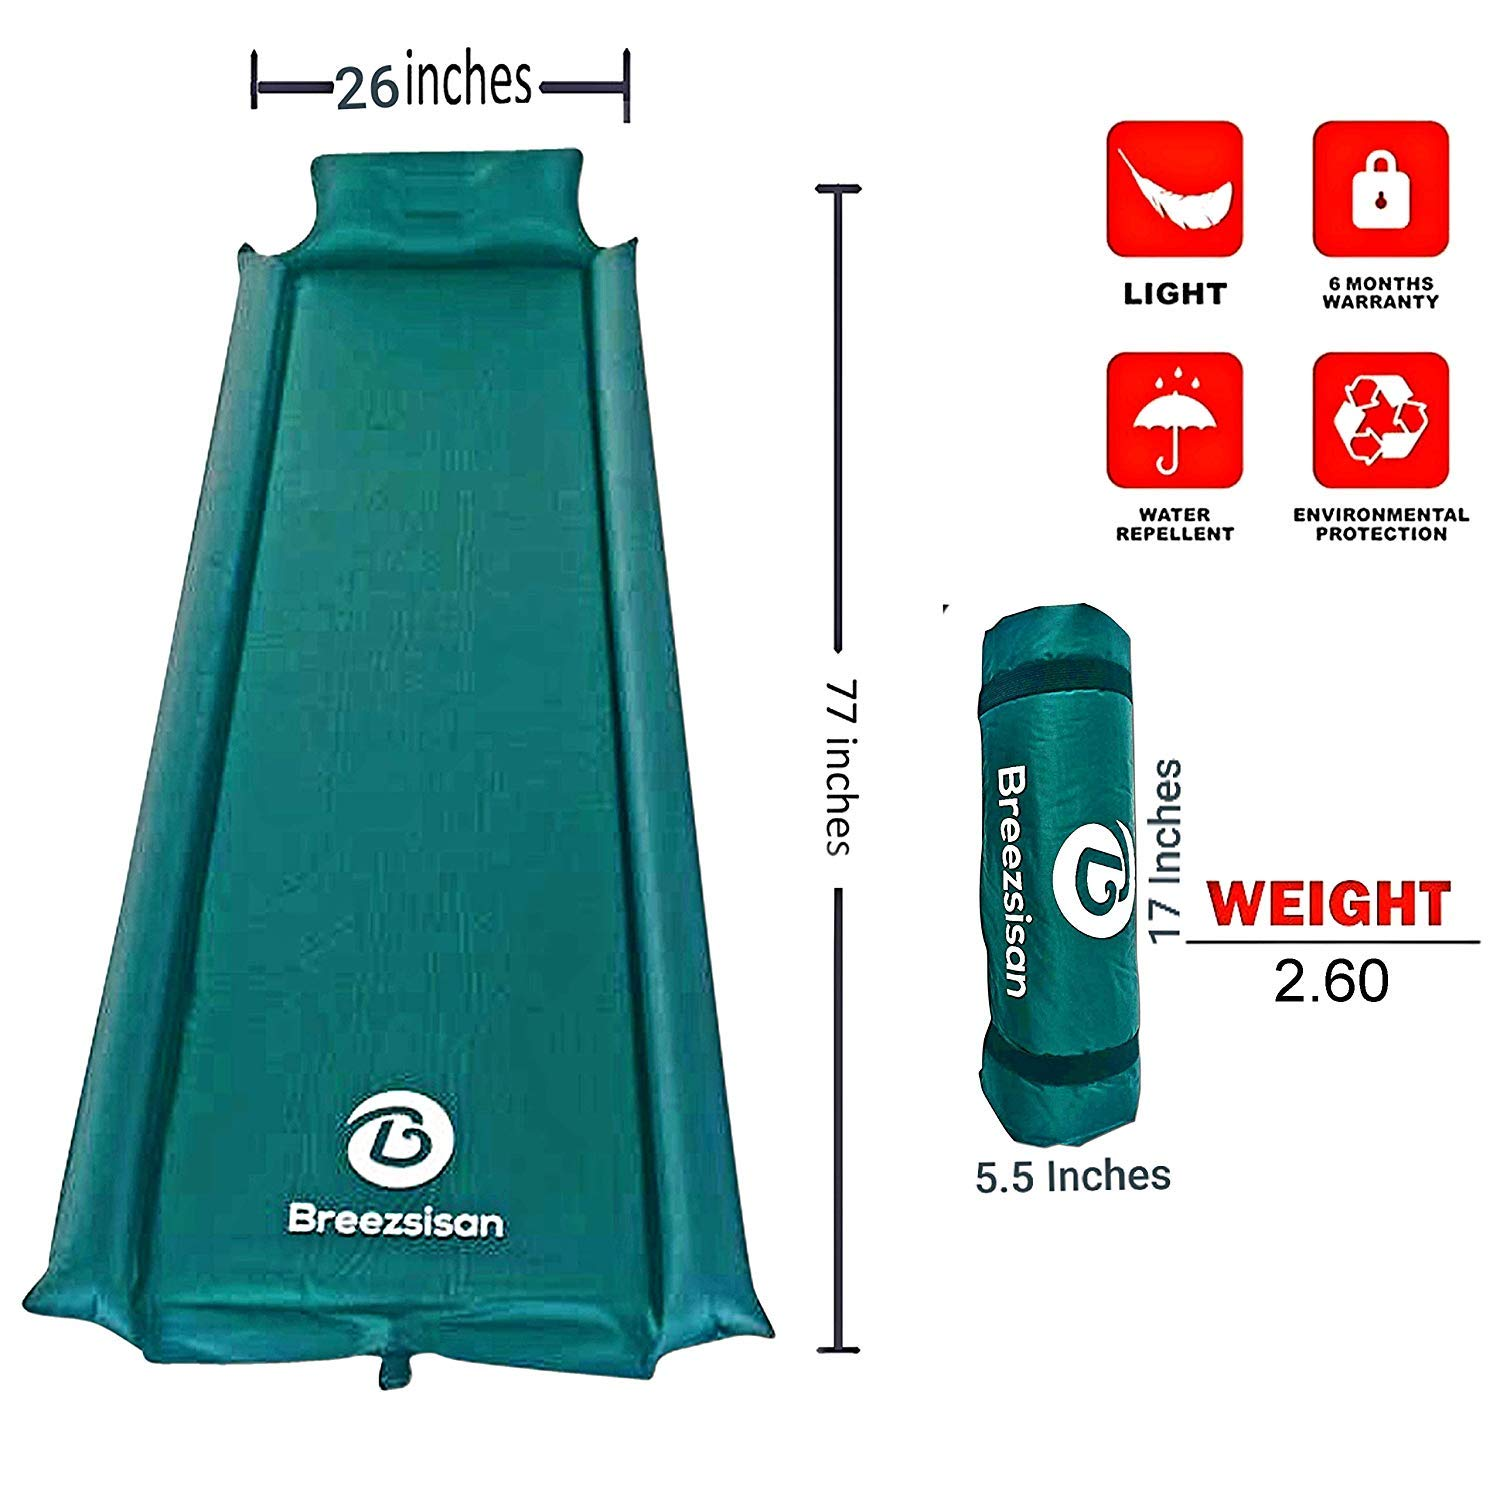 Breezsisan Sleeping Pad Camping Mat. Self Inflating Foam Pads with Pillow Armrest for Travel Backpacking Hiking Hammock Cot Tent Sleep Bag-Inflatable Large Single Air Bed-lightweight Camping Mattress